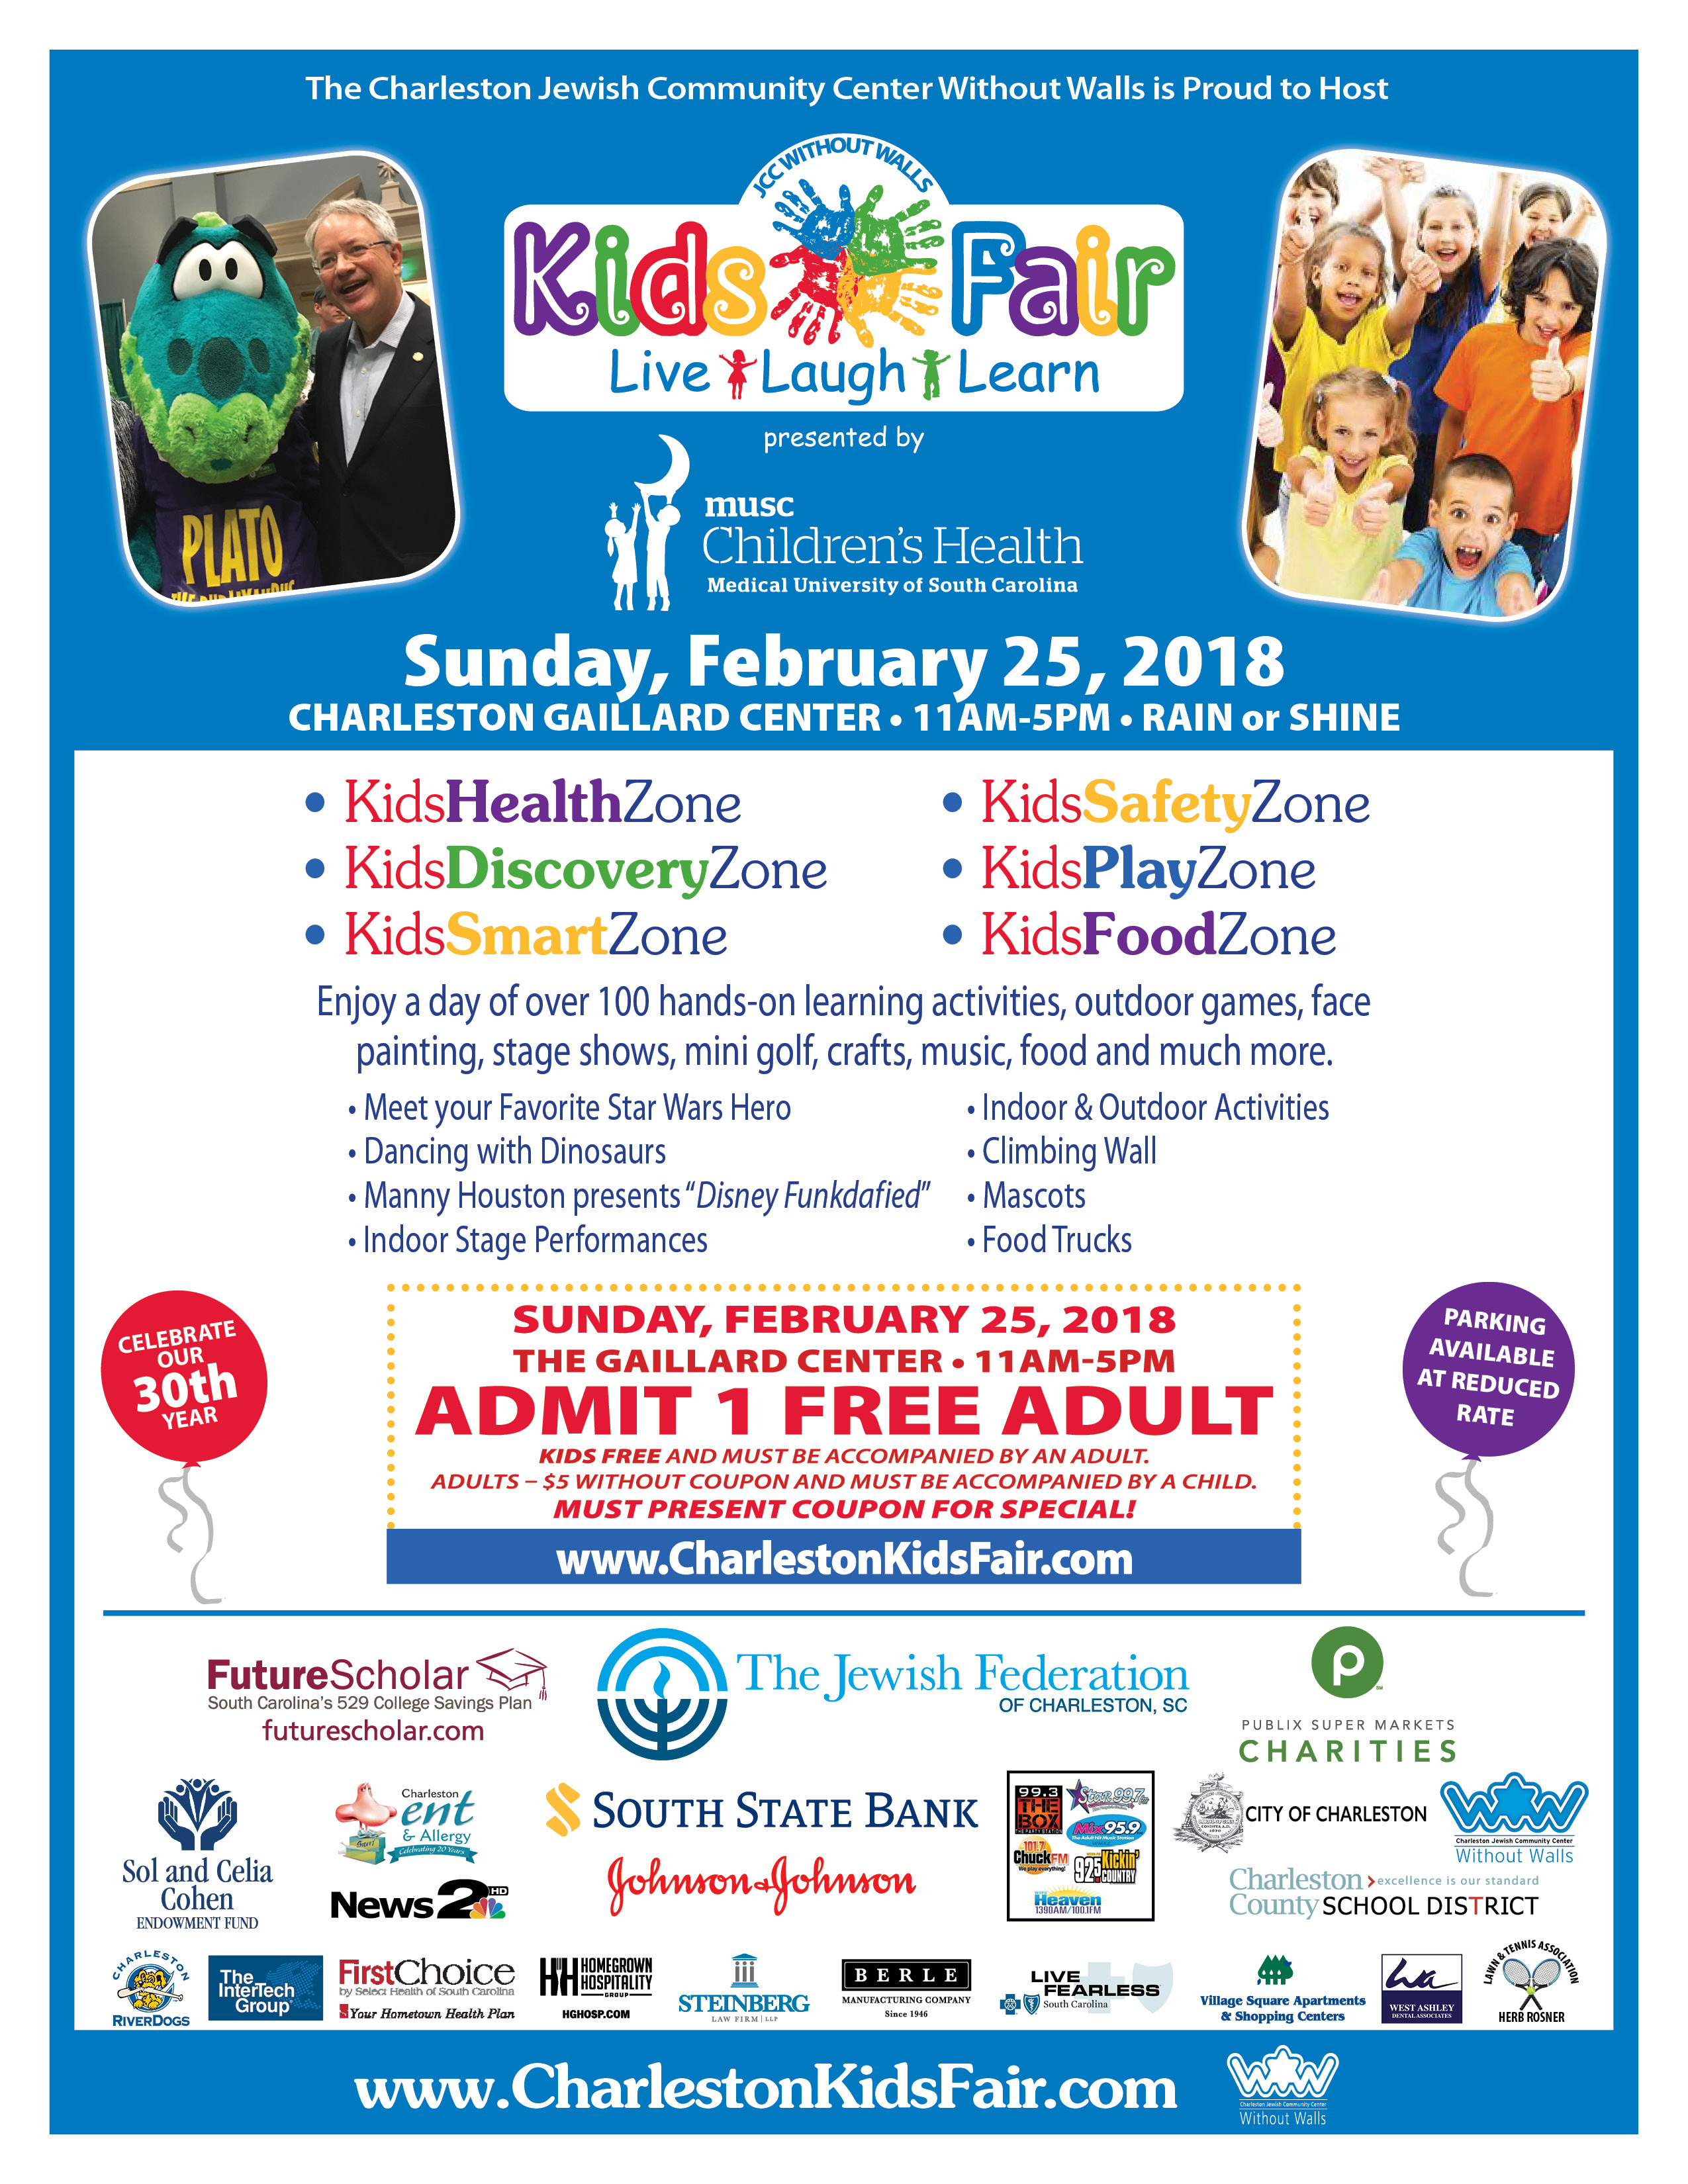 Coupon Flyer | Kids Fair Coupon Flyer 101 7 Chuck Fm101 7 Chuck Fm